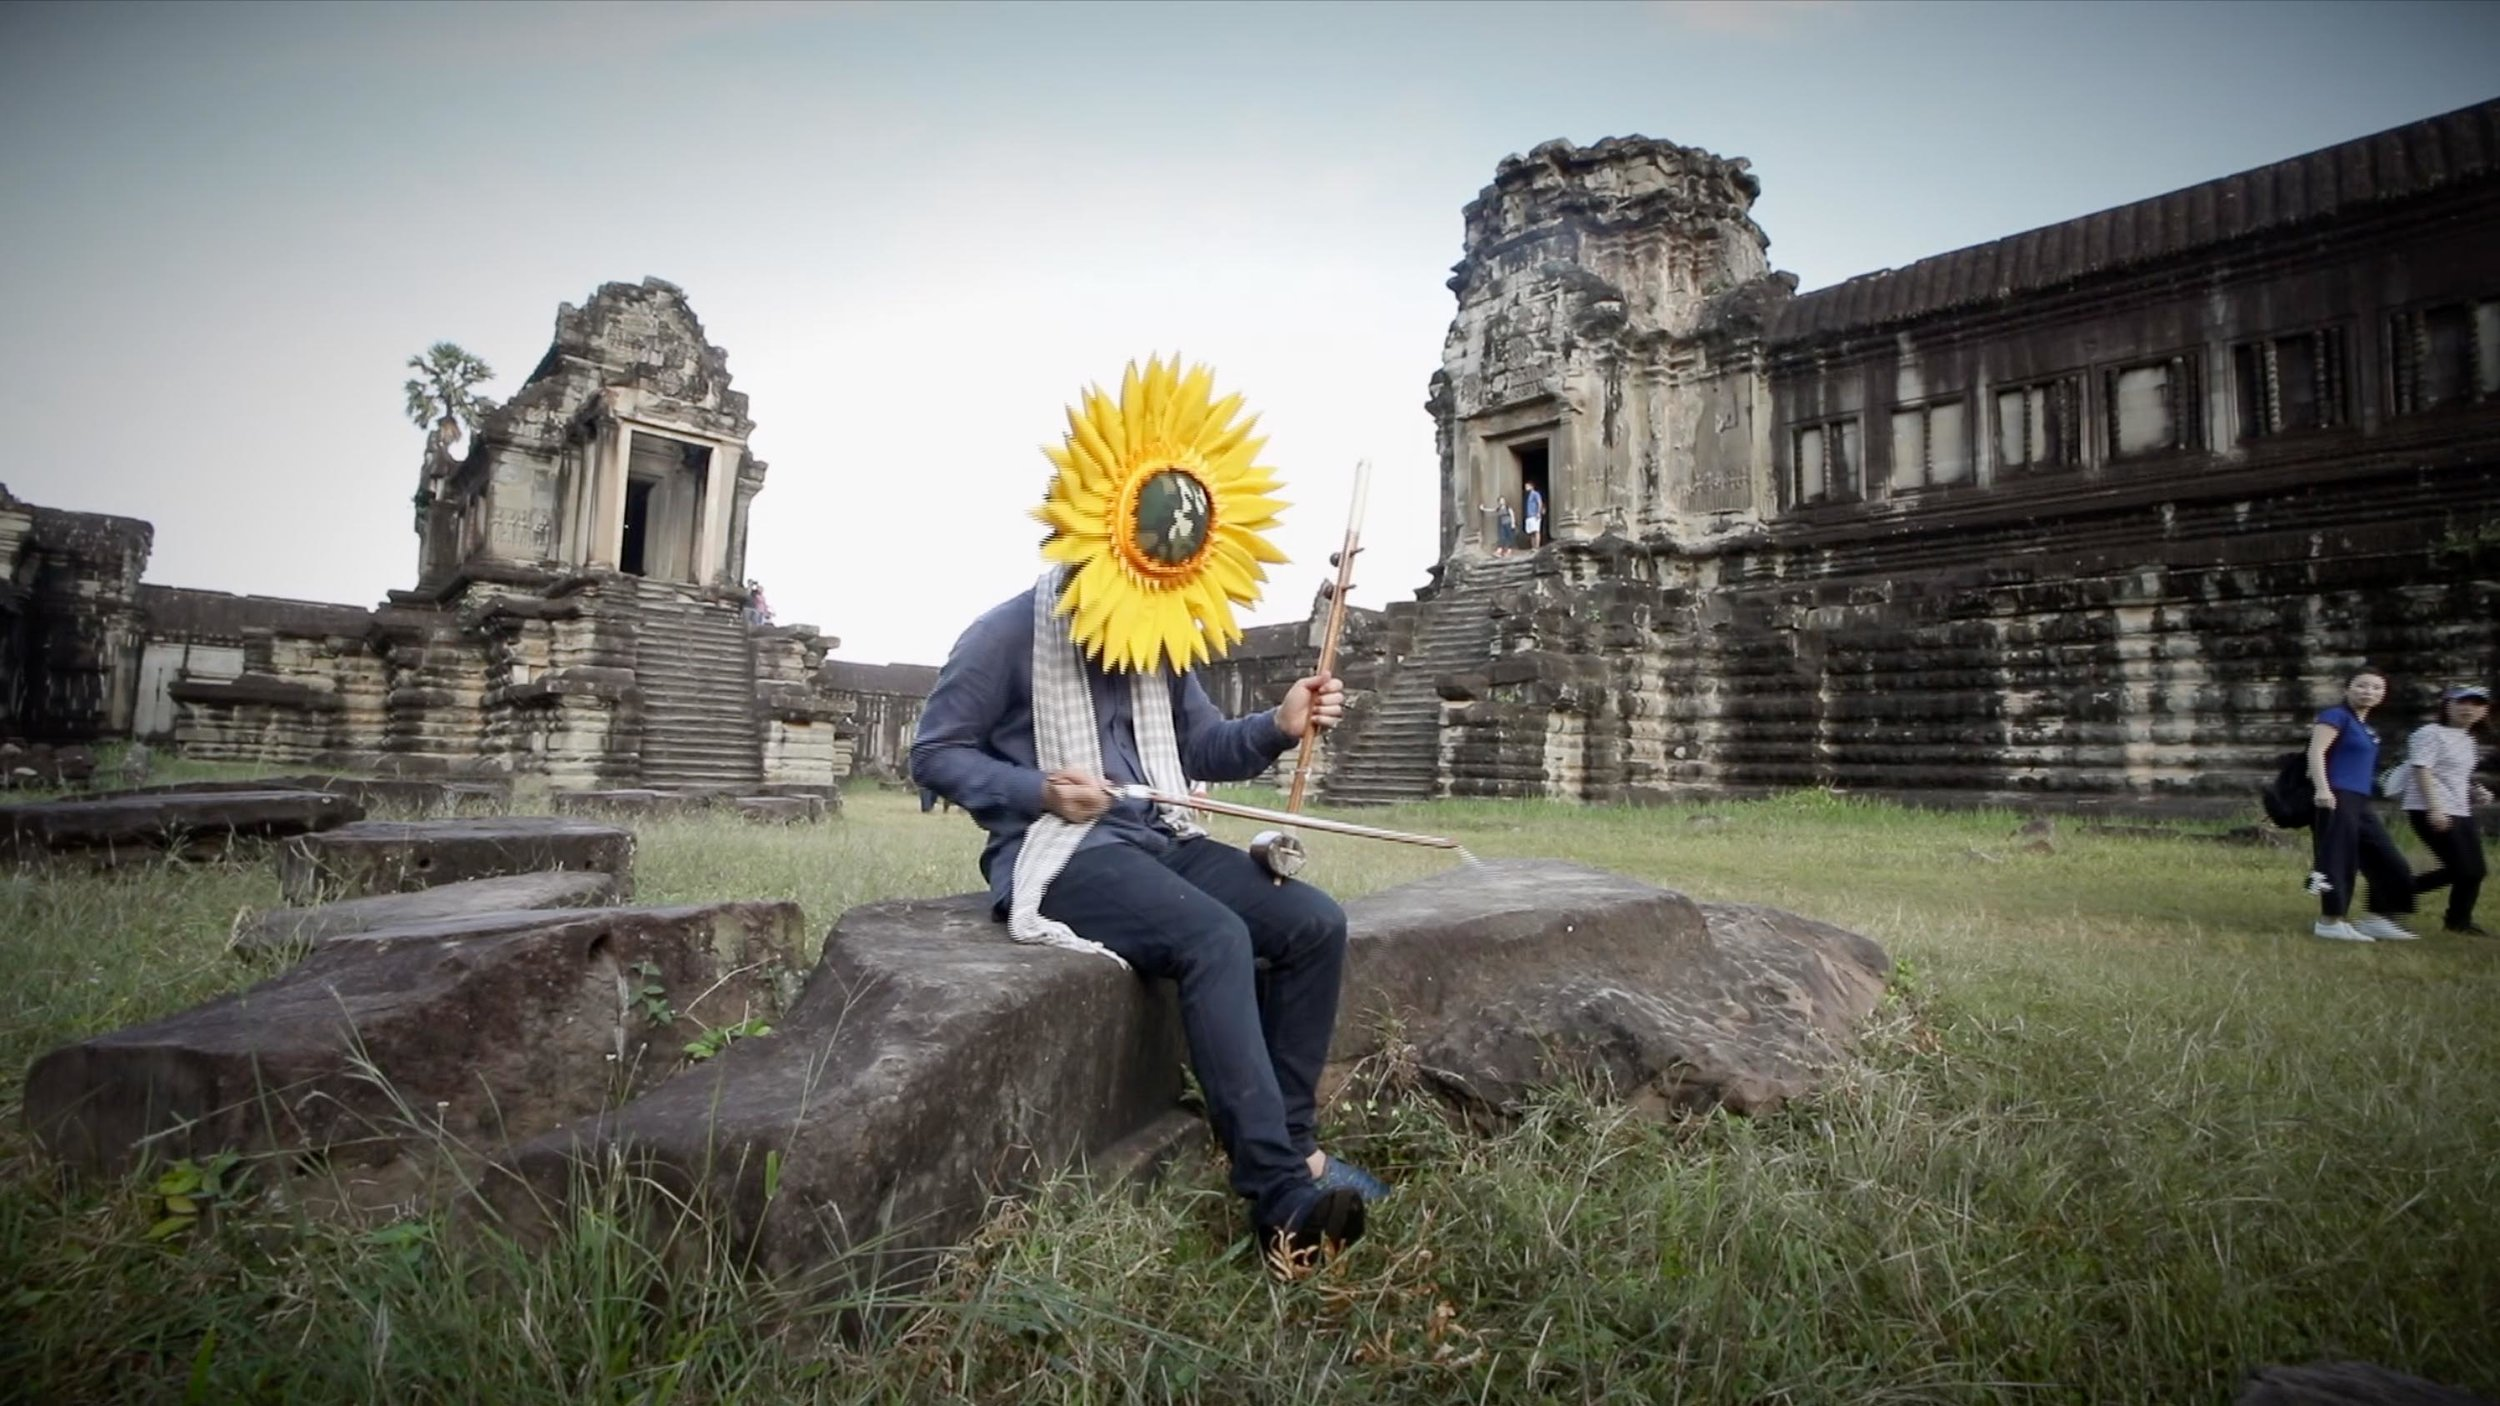 Svay Sareth, 'Beyond Sunflower' (video still), 2018, single-channel video, duration 2min 55 seconds, edition of three. Image courtesy of the artist and Richard Koh Fine Art.